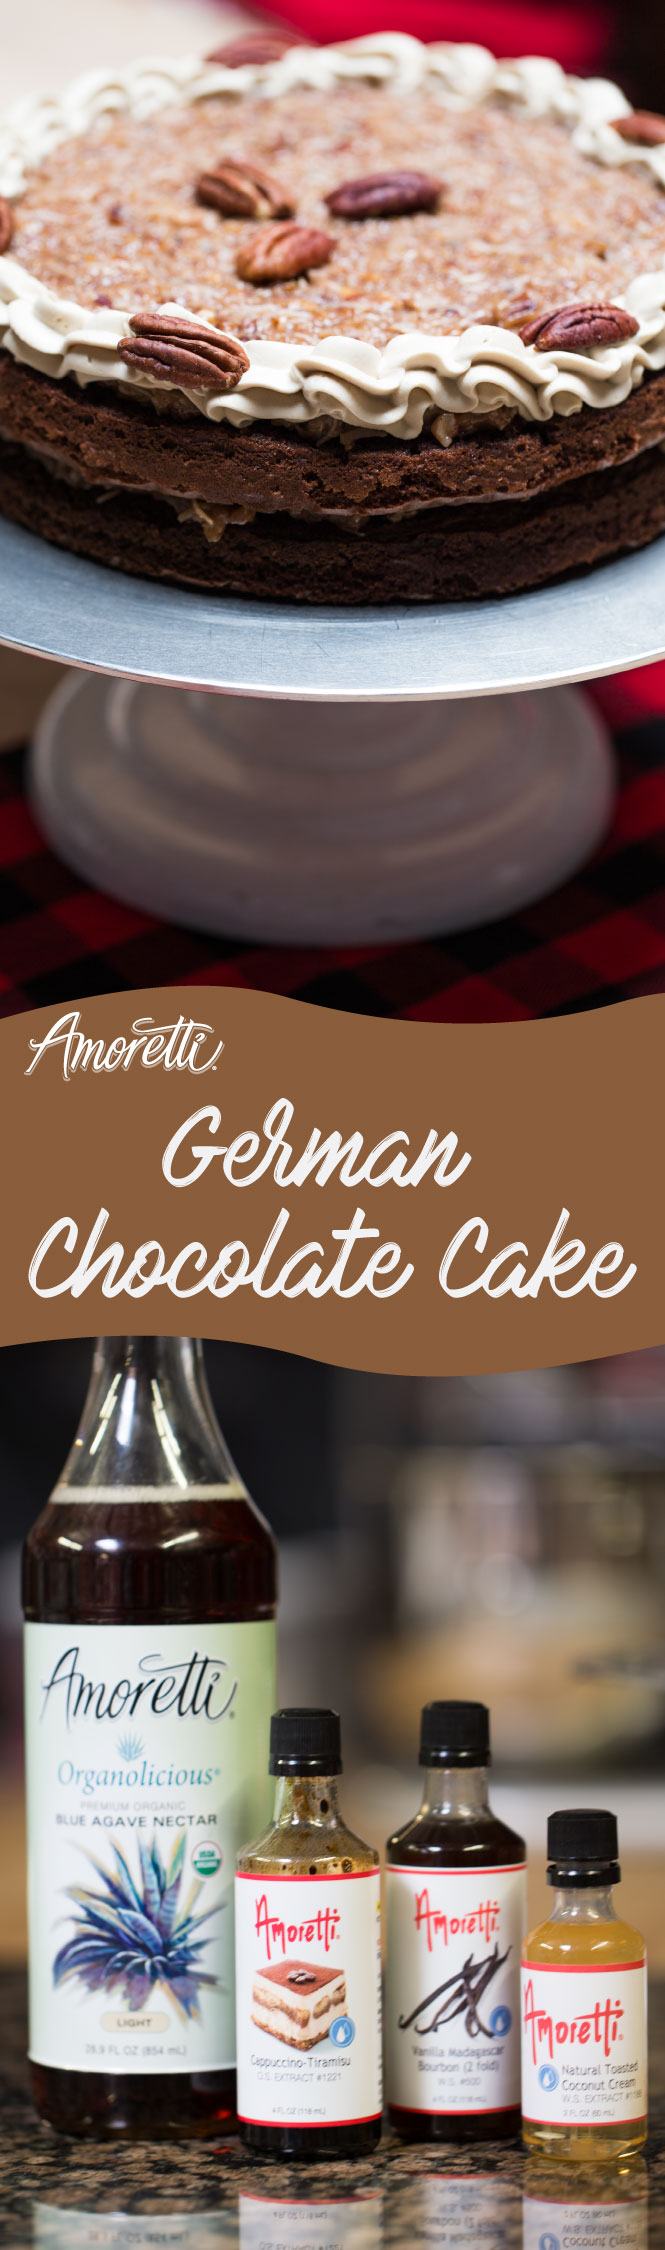 Stop sweet cravings in their tracks with this decadent German Chocolate Cake!